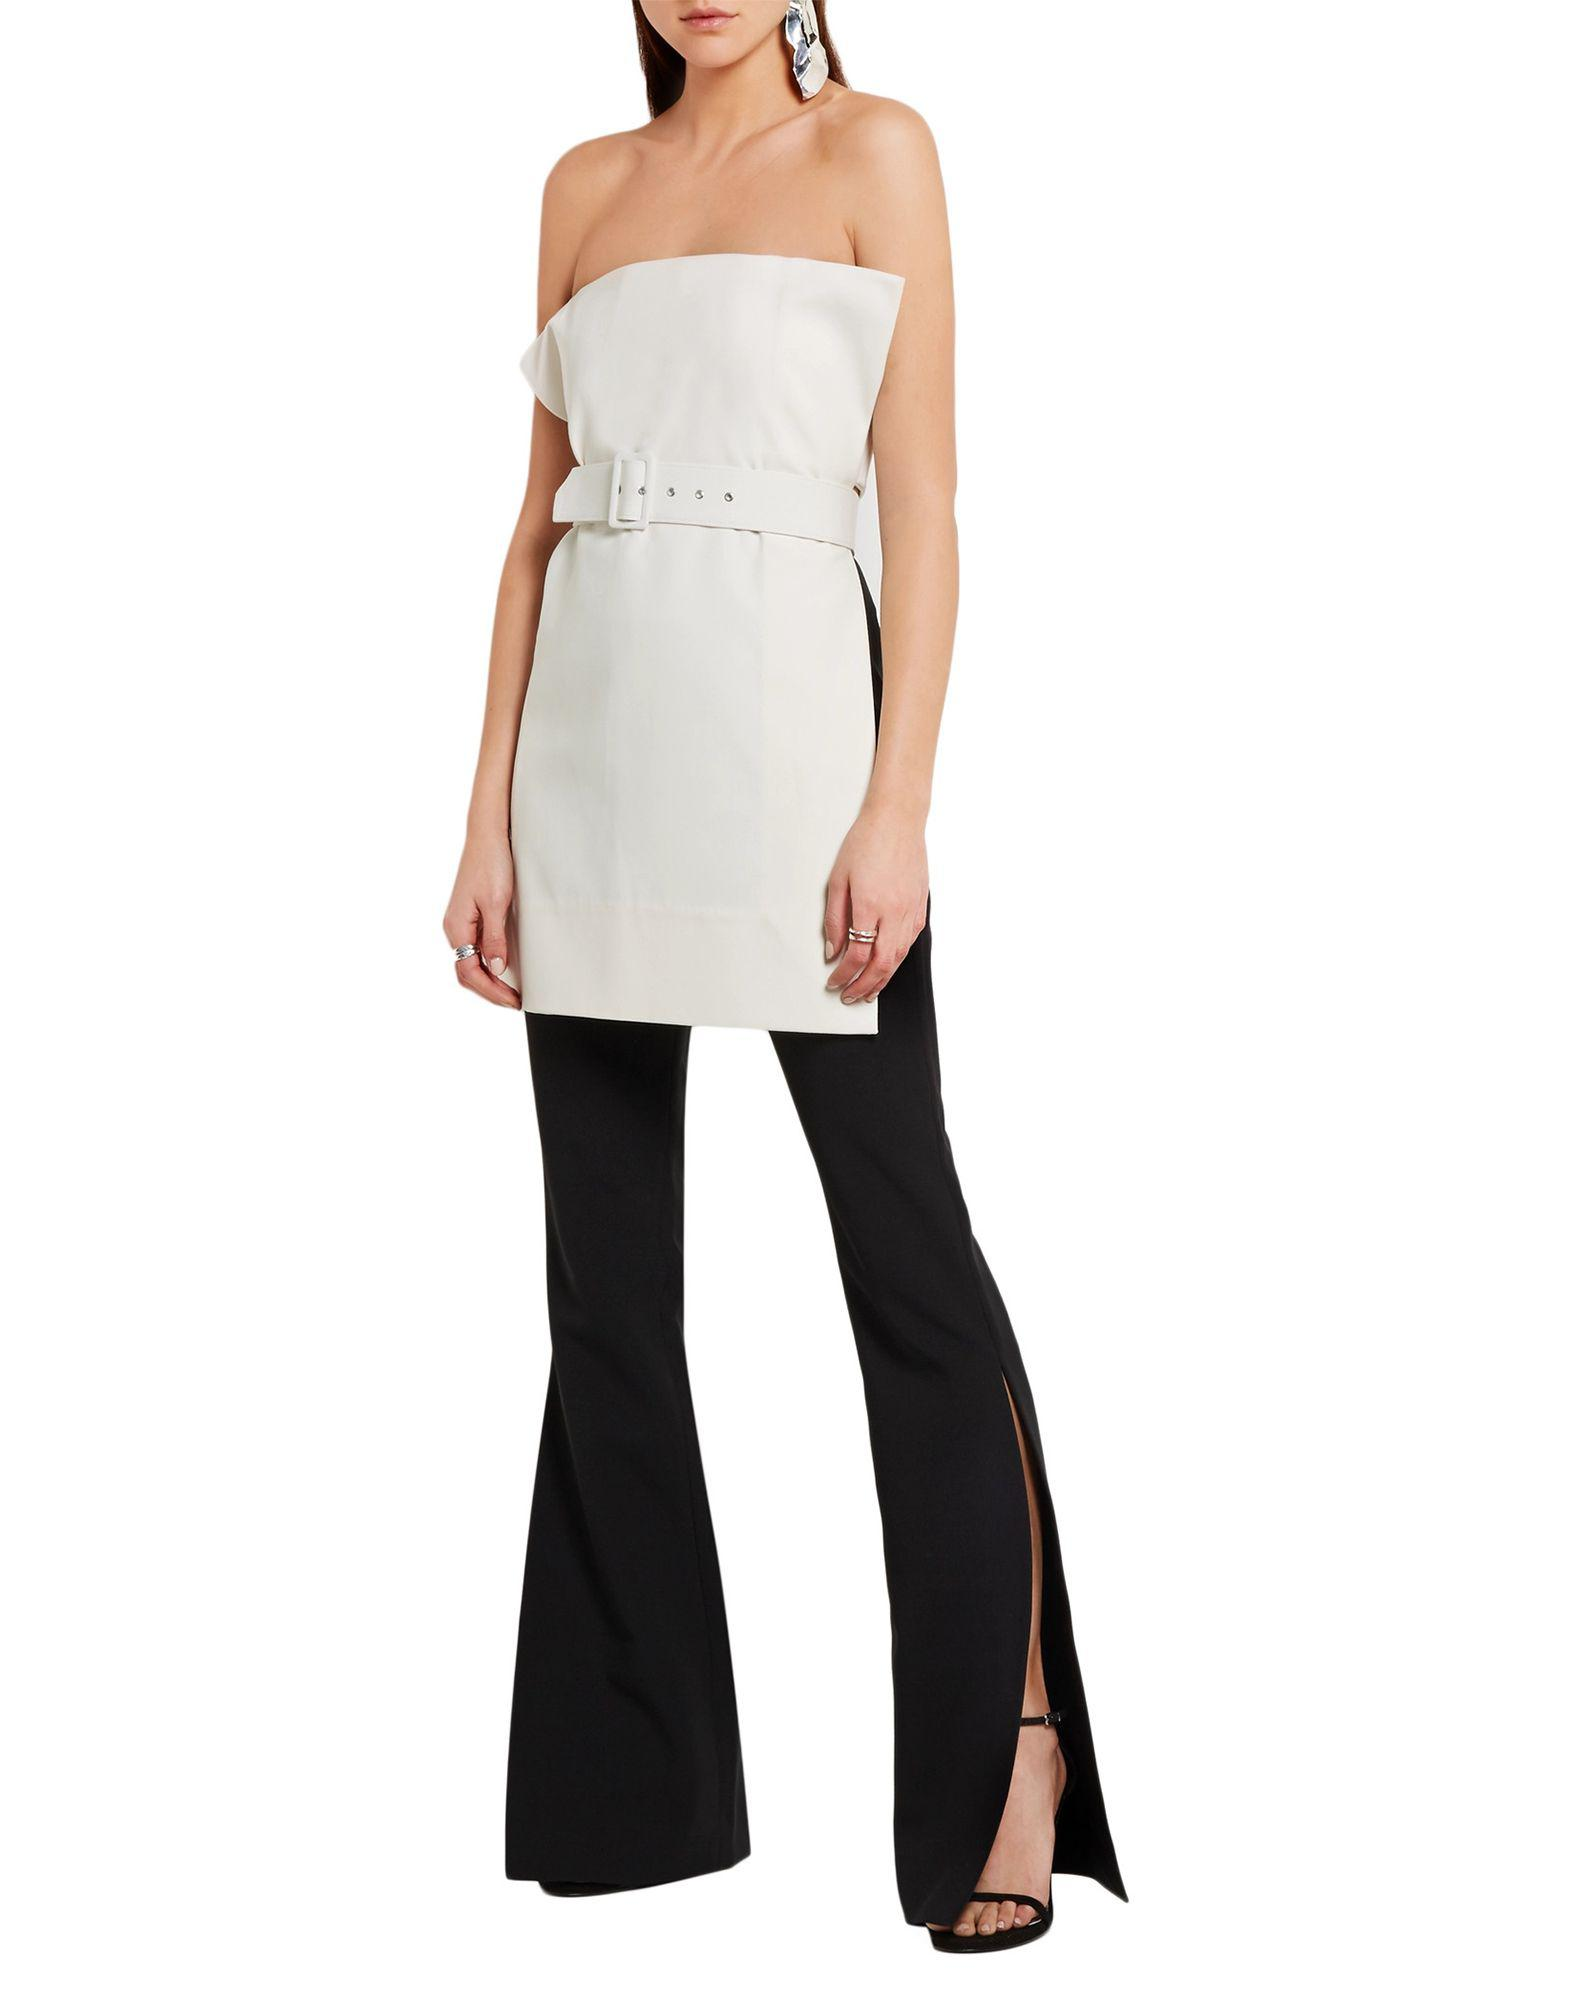 3738a35ccf Solace London Tube Top in White - Lyst